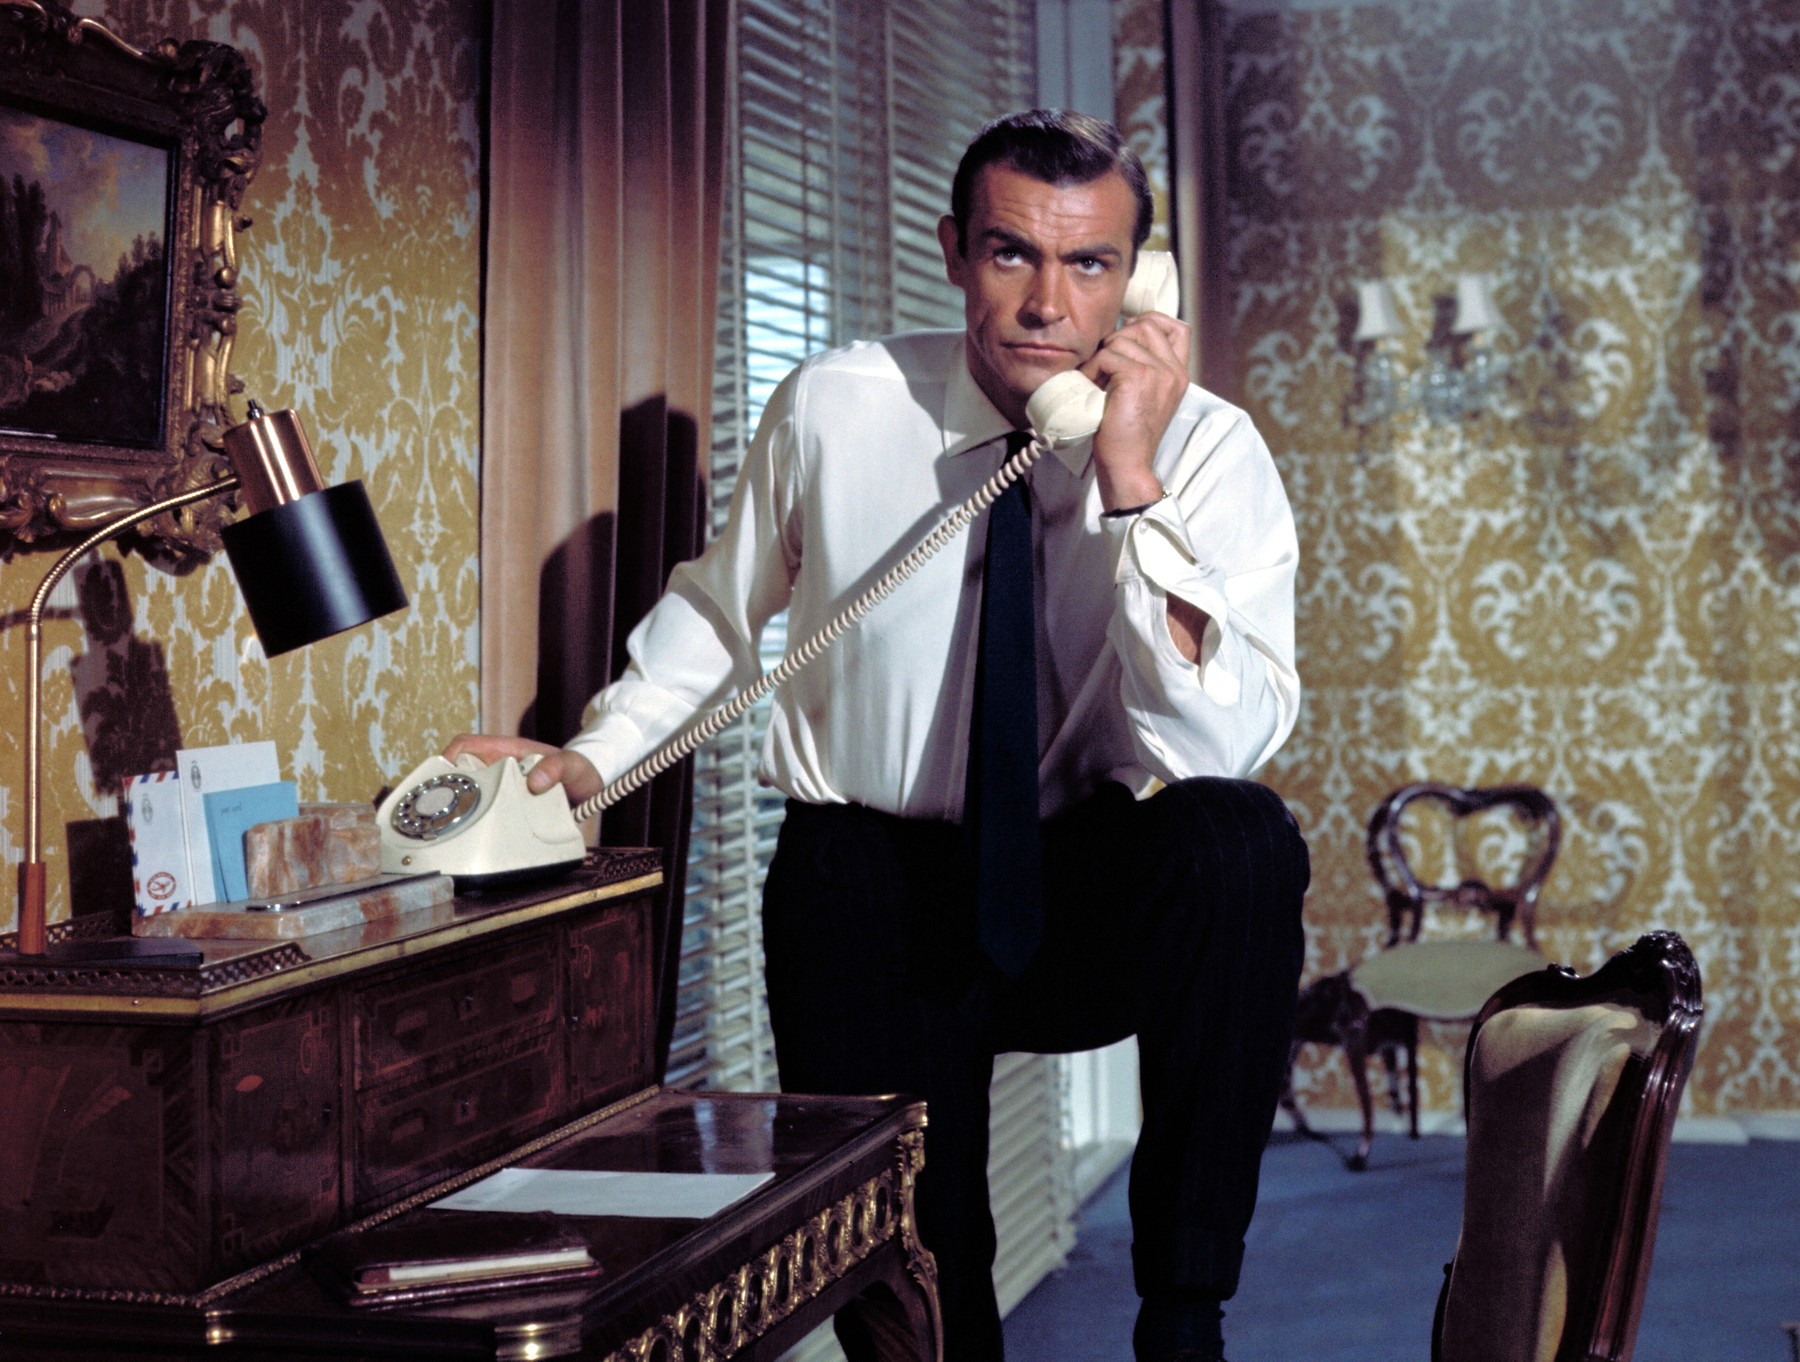 FROM RUSSIA WITH LOVE, Sean Connery, 1963.,Image: 97894455, License: Rights-managed, Restrictions: For usage credit please use; Courtesy Everett Collection, Model Release: no, Credit line: Courtesy Everett Collection / Everett / Profimedia